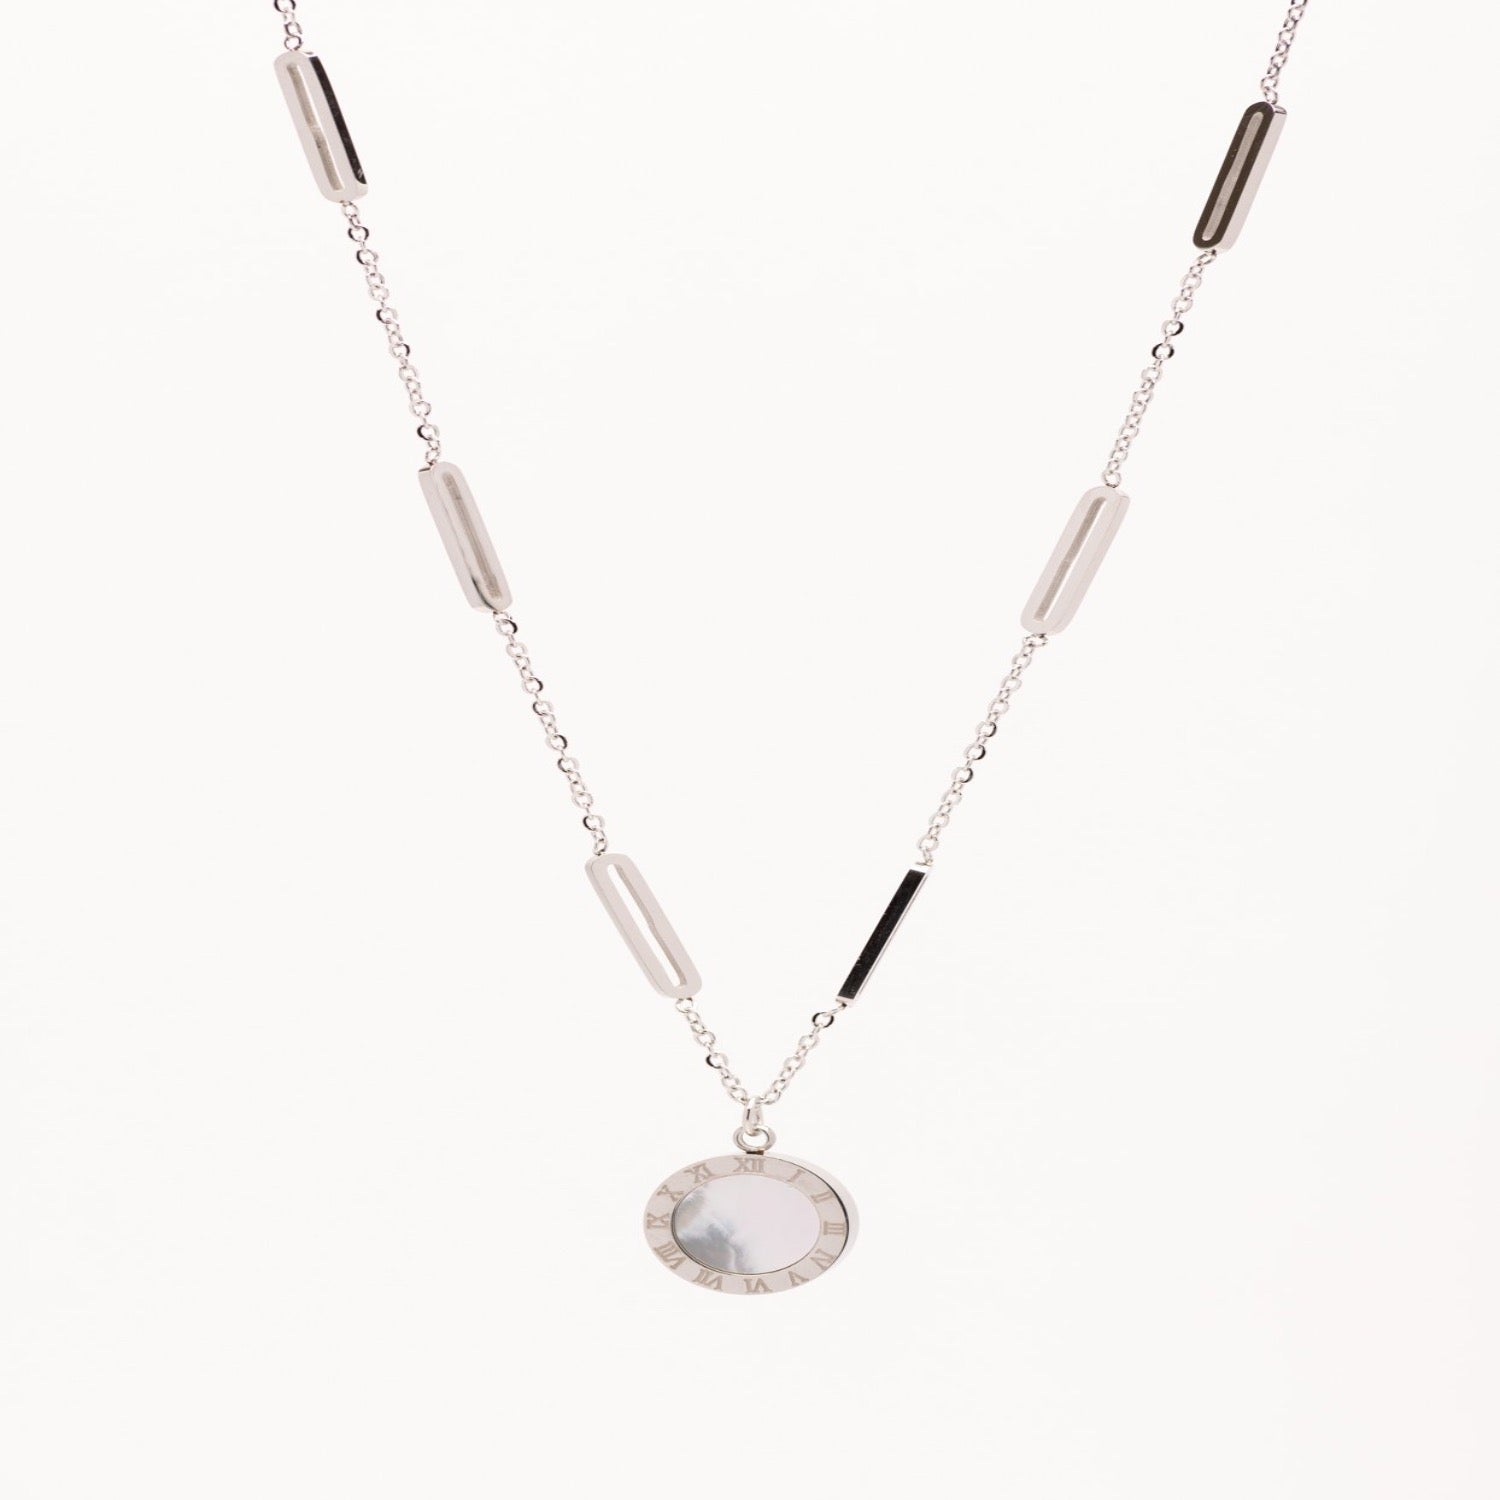 Stainless Steel Mother of Pearl Necklace